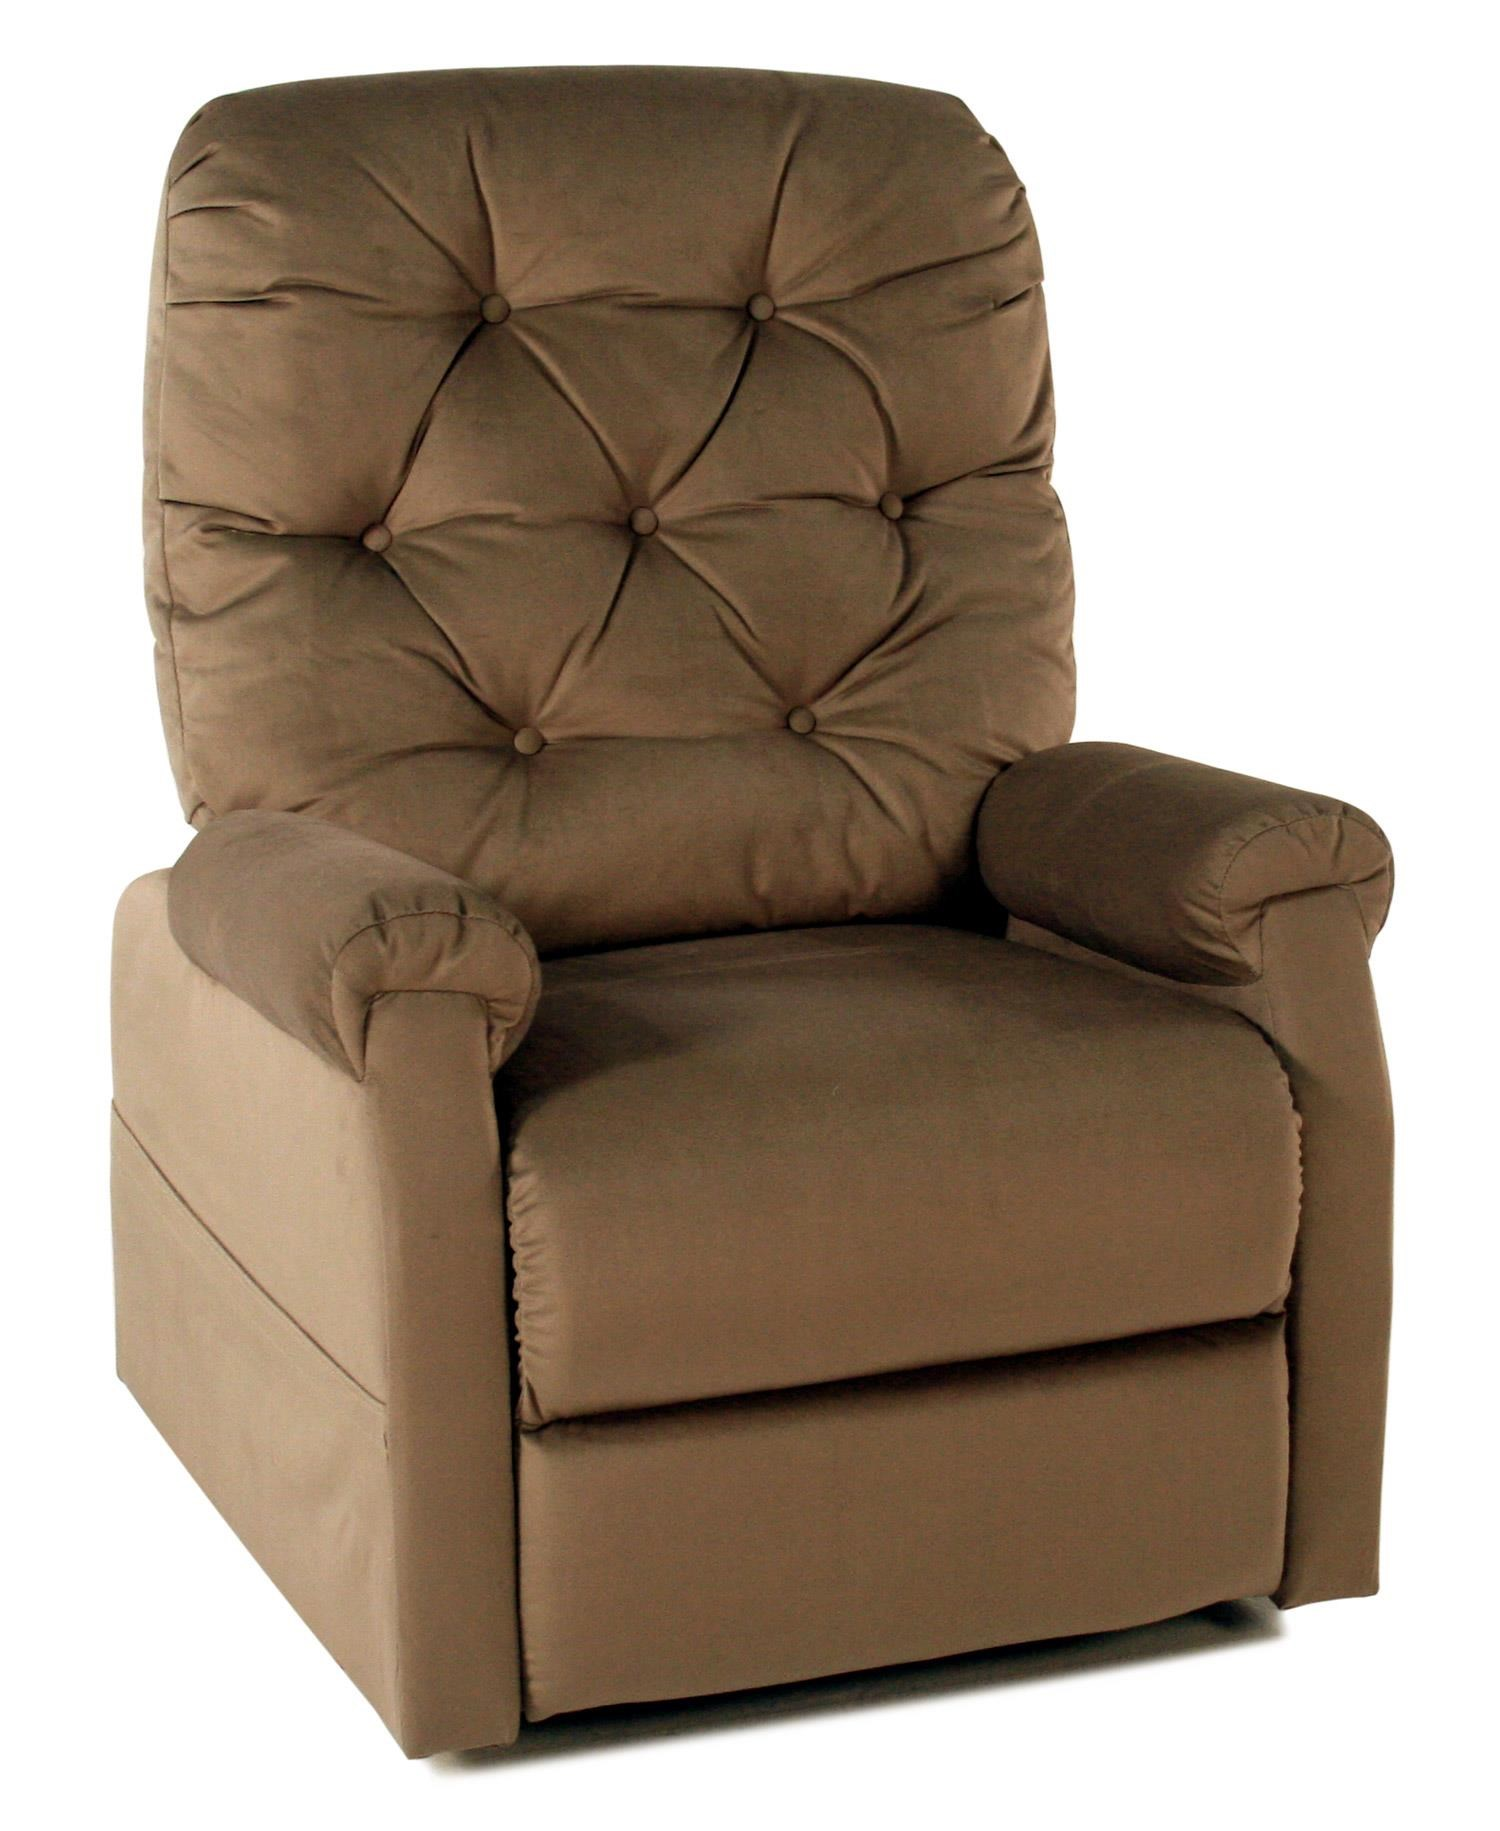 3-Way Power Reclining Lift Chair